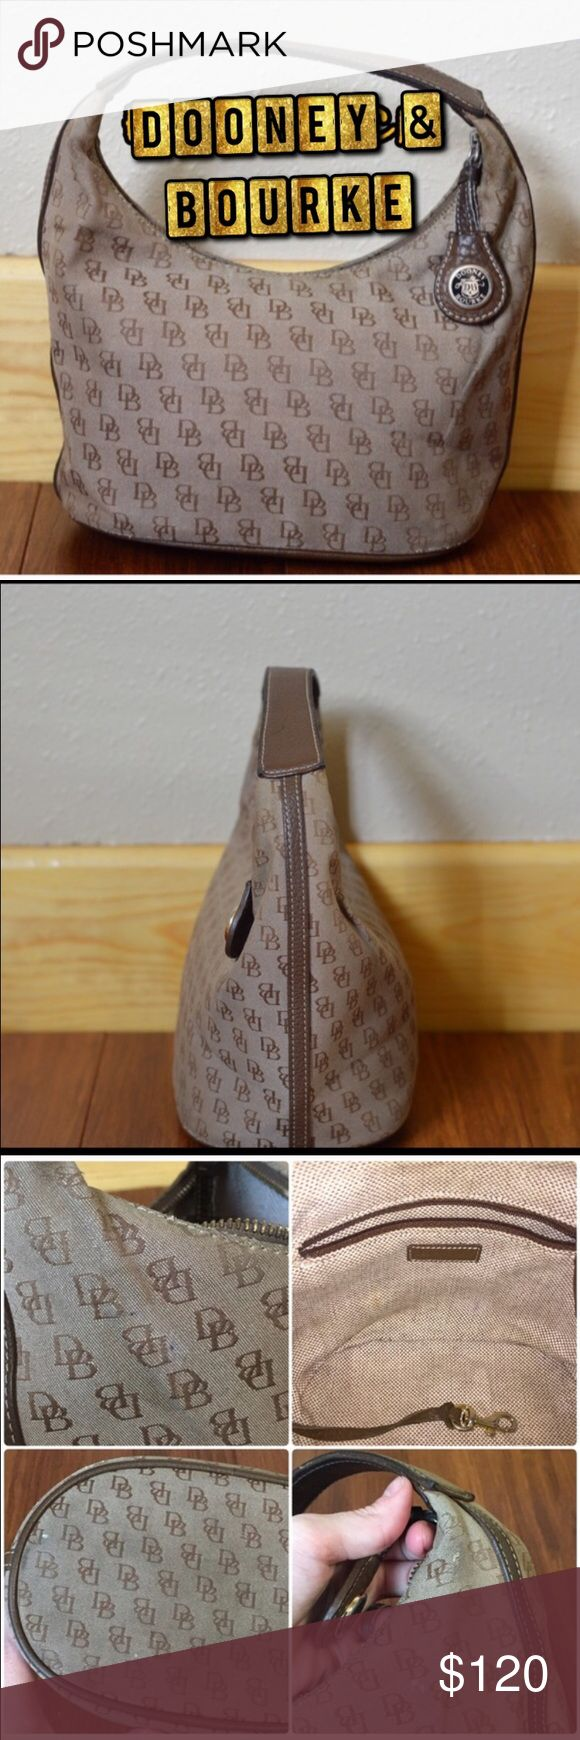 Signature Bucket Bag Vintage Defects: two ink pen dots on side, see pic. Small brown mark inside bag, see pic. Some wear near seams of handles and bottom of bag. Some of the brown dye in the leather has worn off on the handle Condition: Great  🚫smoke 🏡 with 🐈🐩.🚫Stain treatment due to skin allergy. Dooney & Bourke Bags